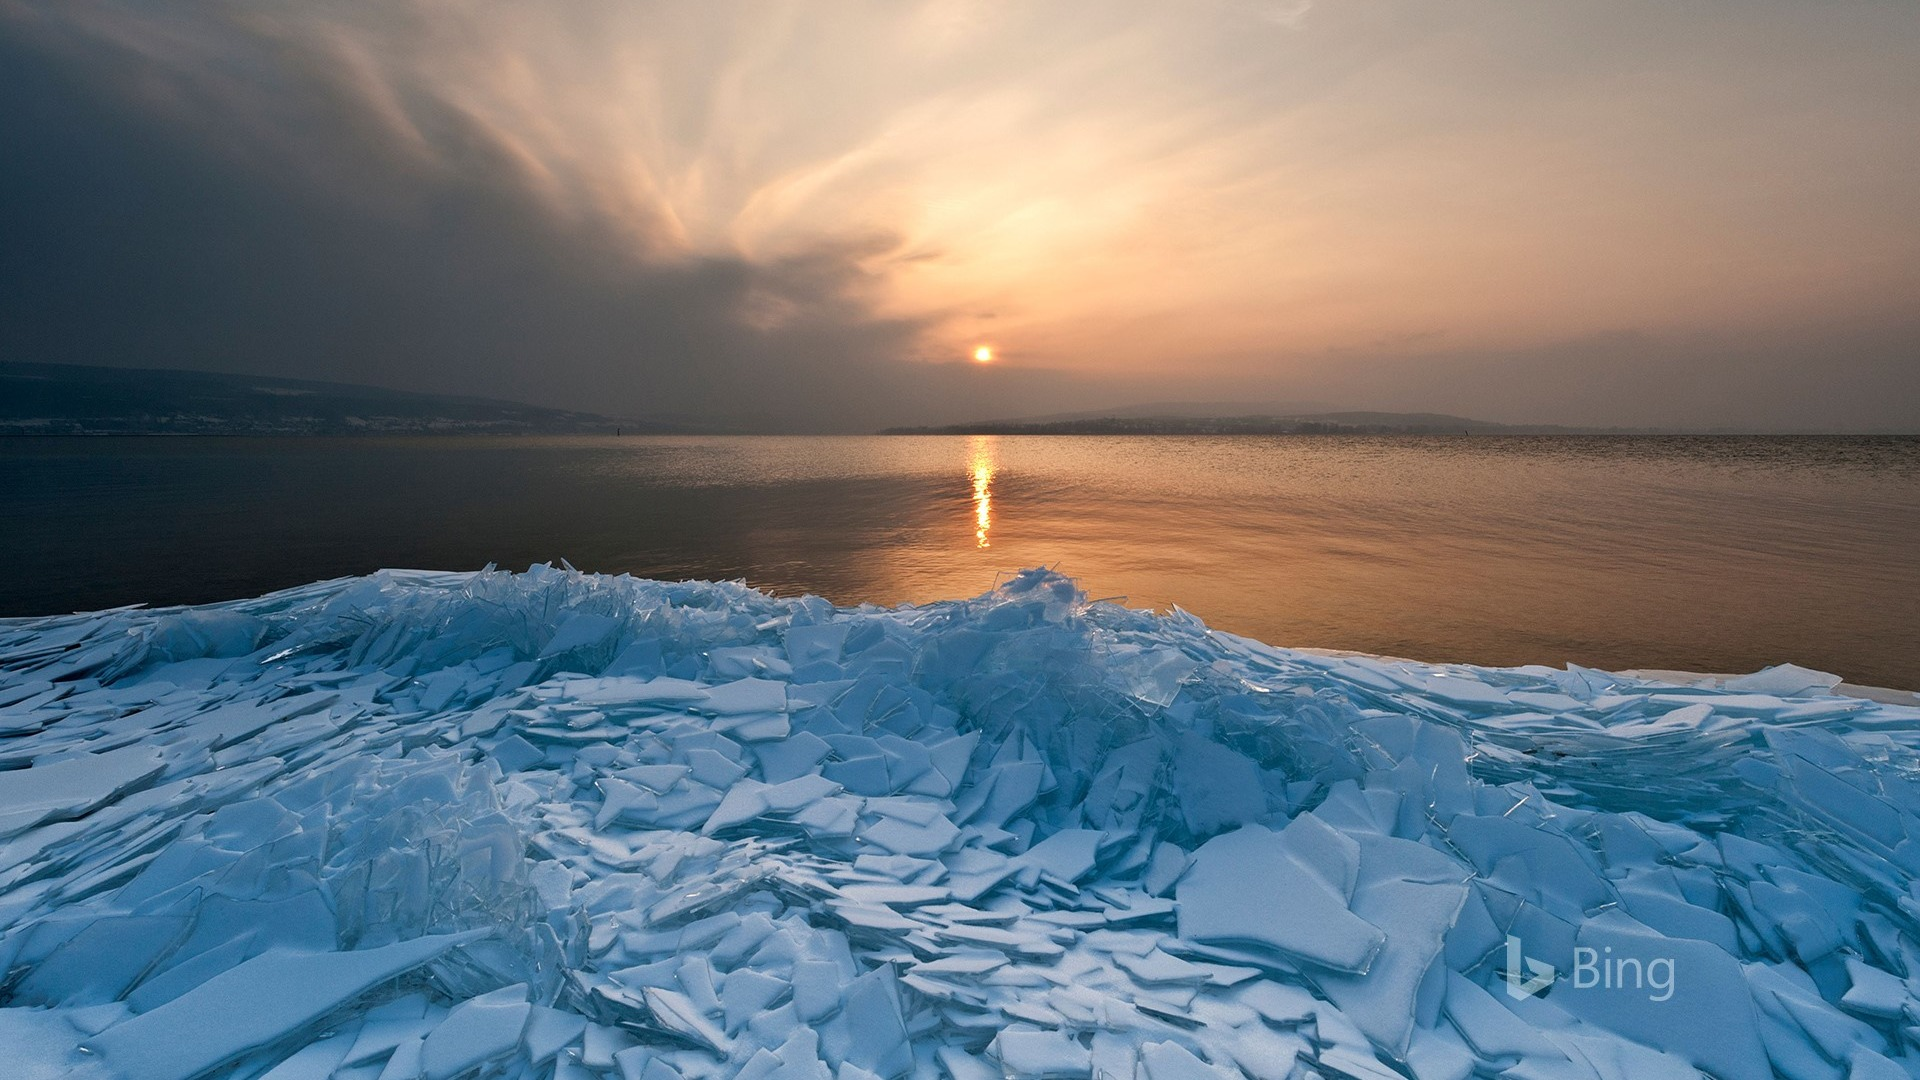 Nike Hd Wallpaper Iphone X Germany Ice Floes Lake Constance 2018 Bing Preview